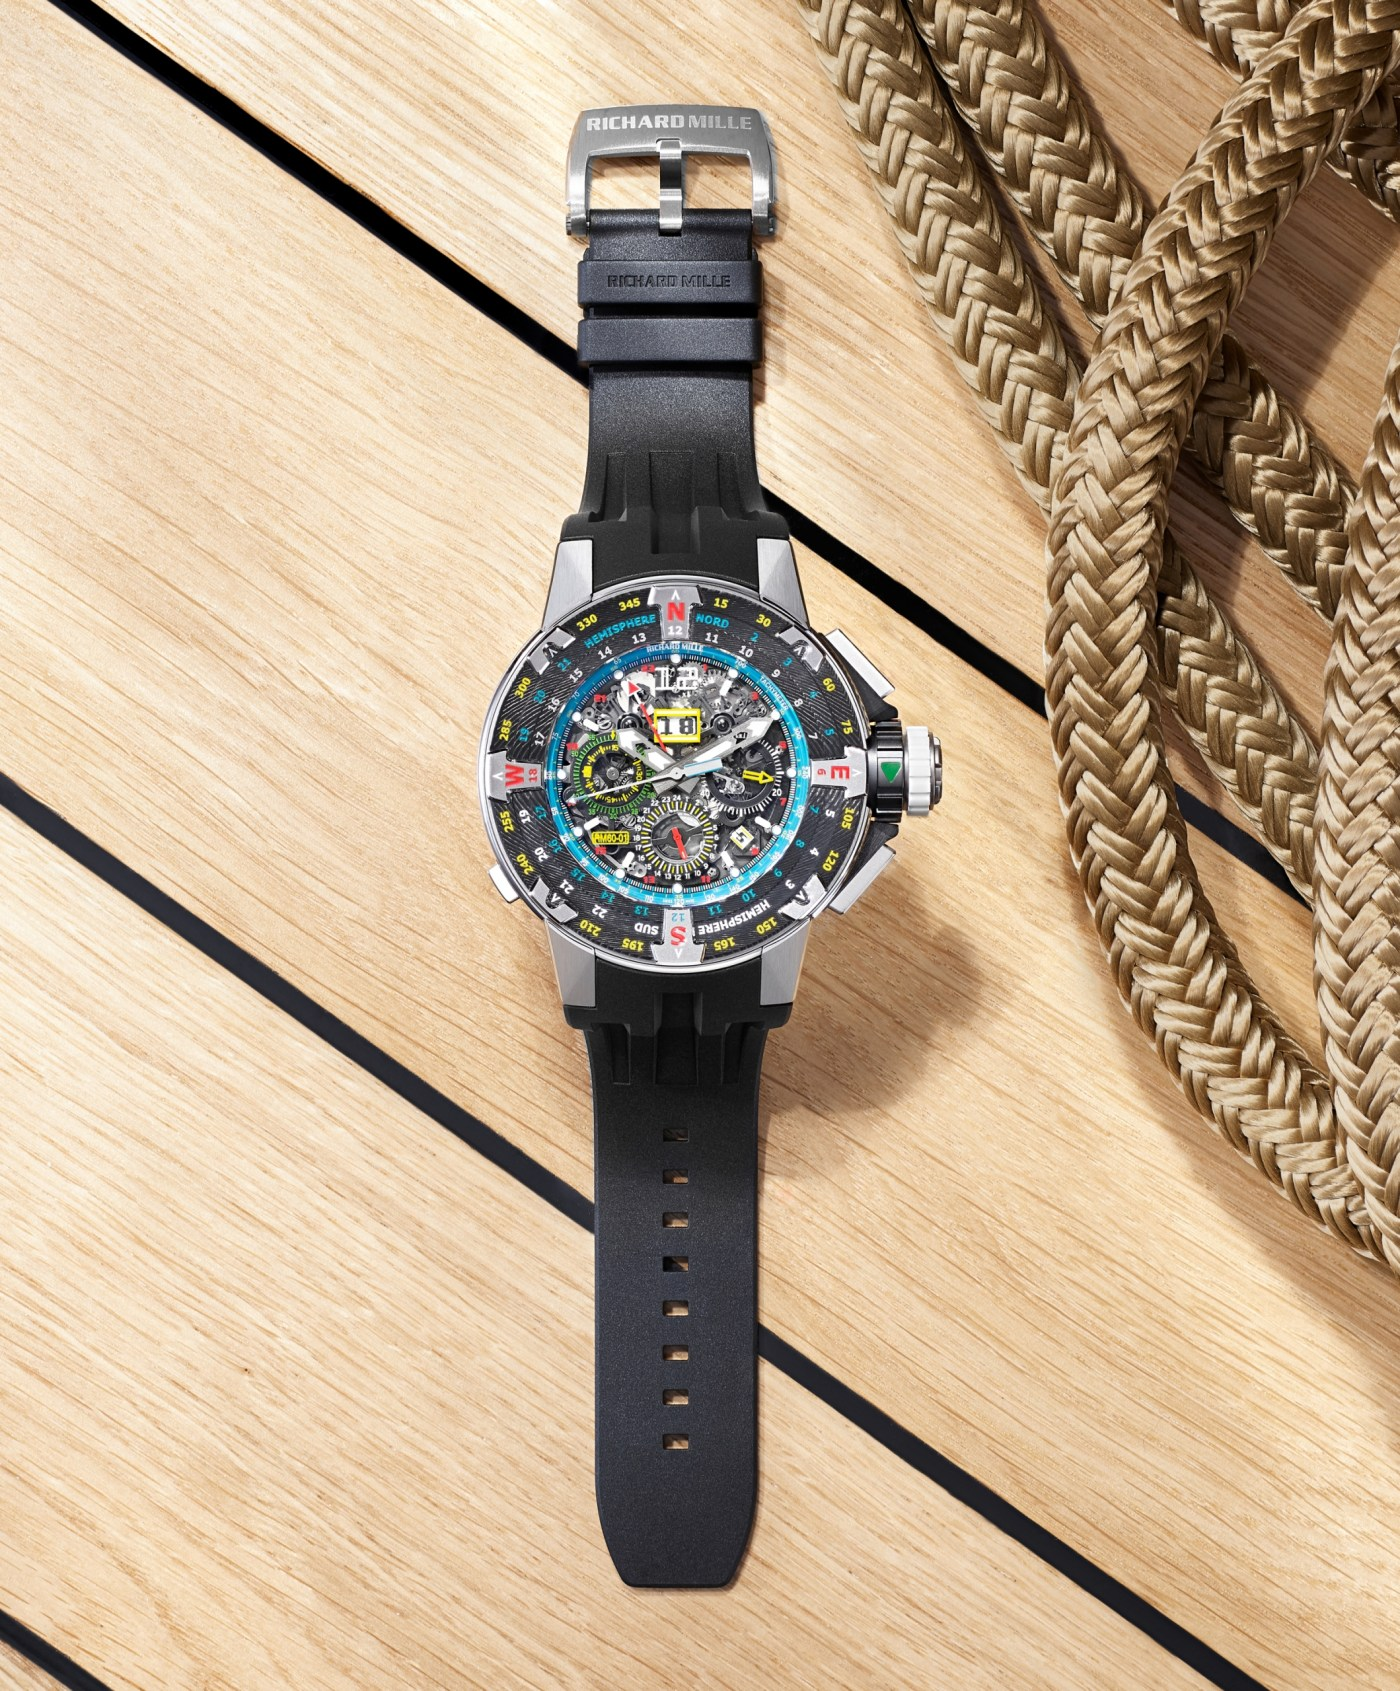 2021 RM 60-01 Automatic Flyback Chronograph Les Voiles de St Barth